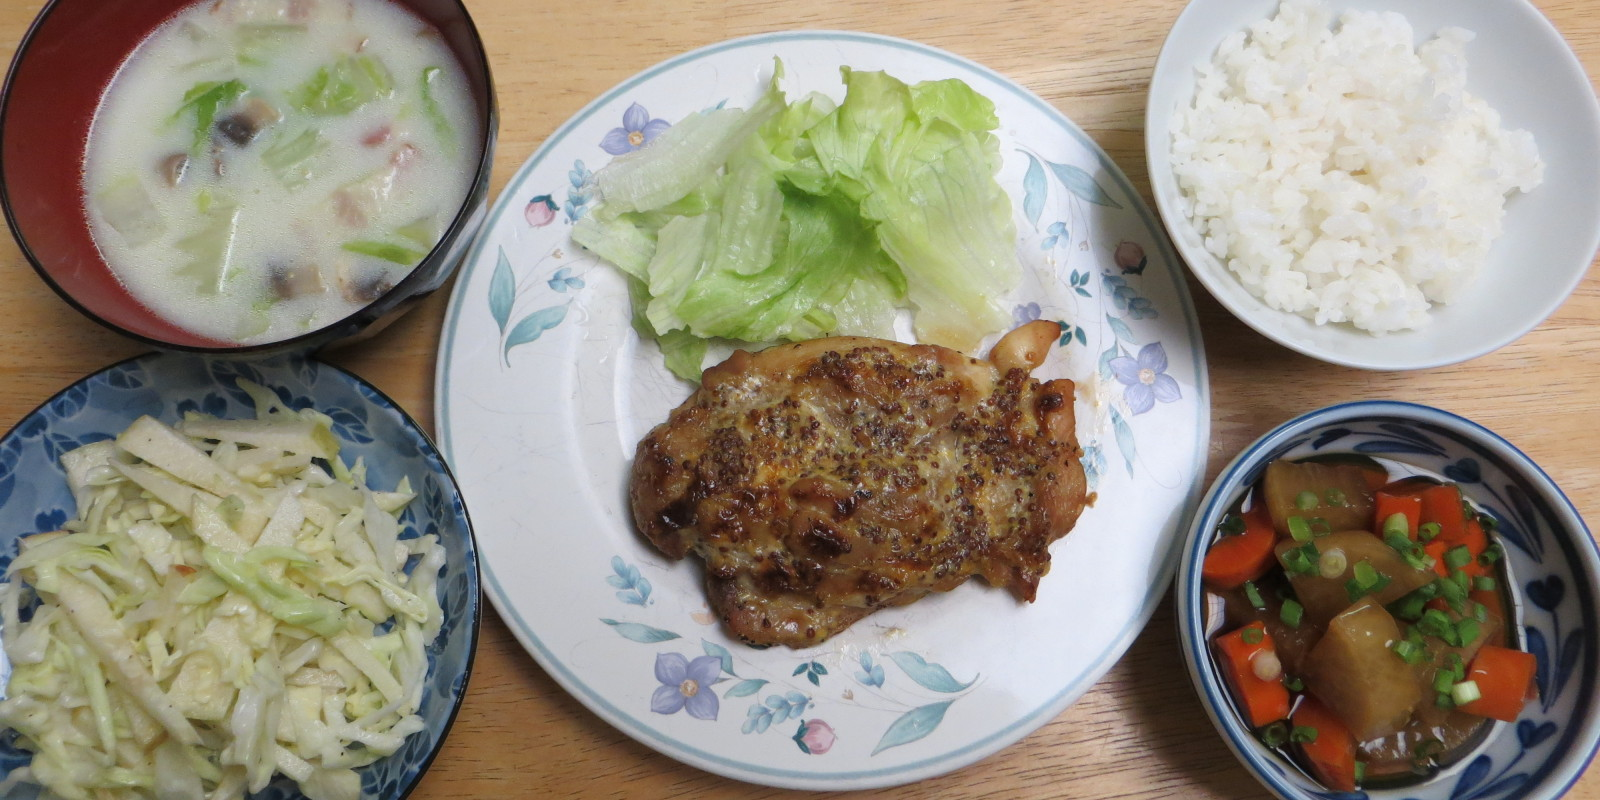 grilled mustard chicken set meal